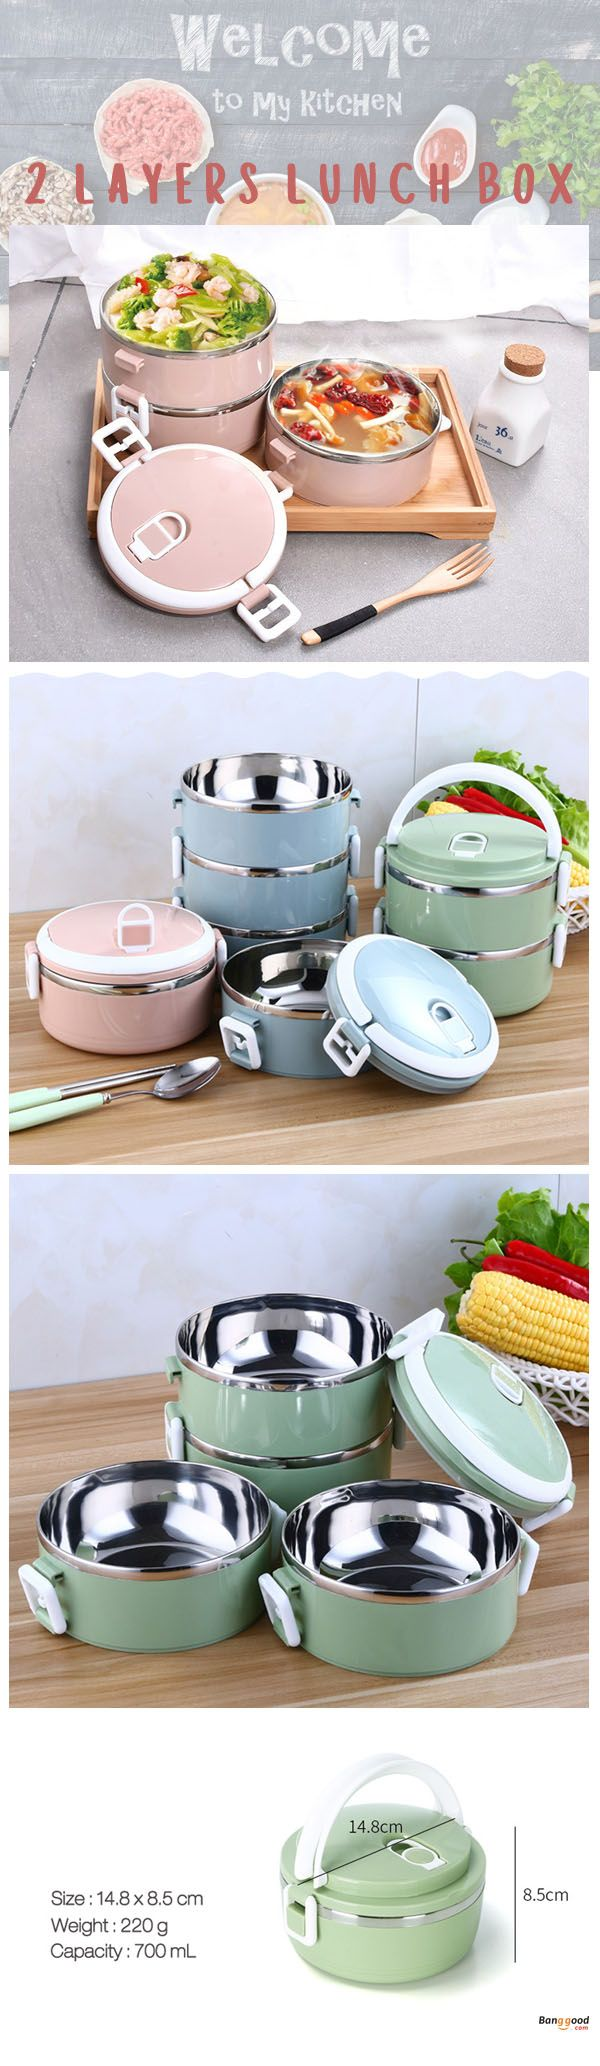 Stainless Steel Food container. 4 colors and 2 sizes available. This lunch box is made of food-grade PP materials and high quality stainless steel. Shop at banggood.